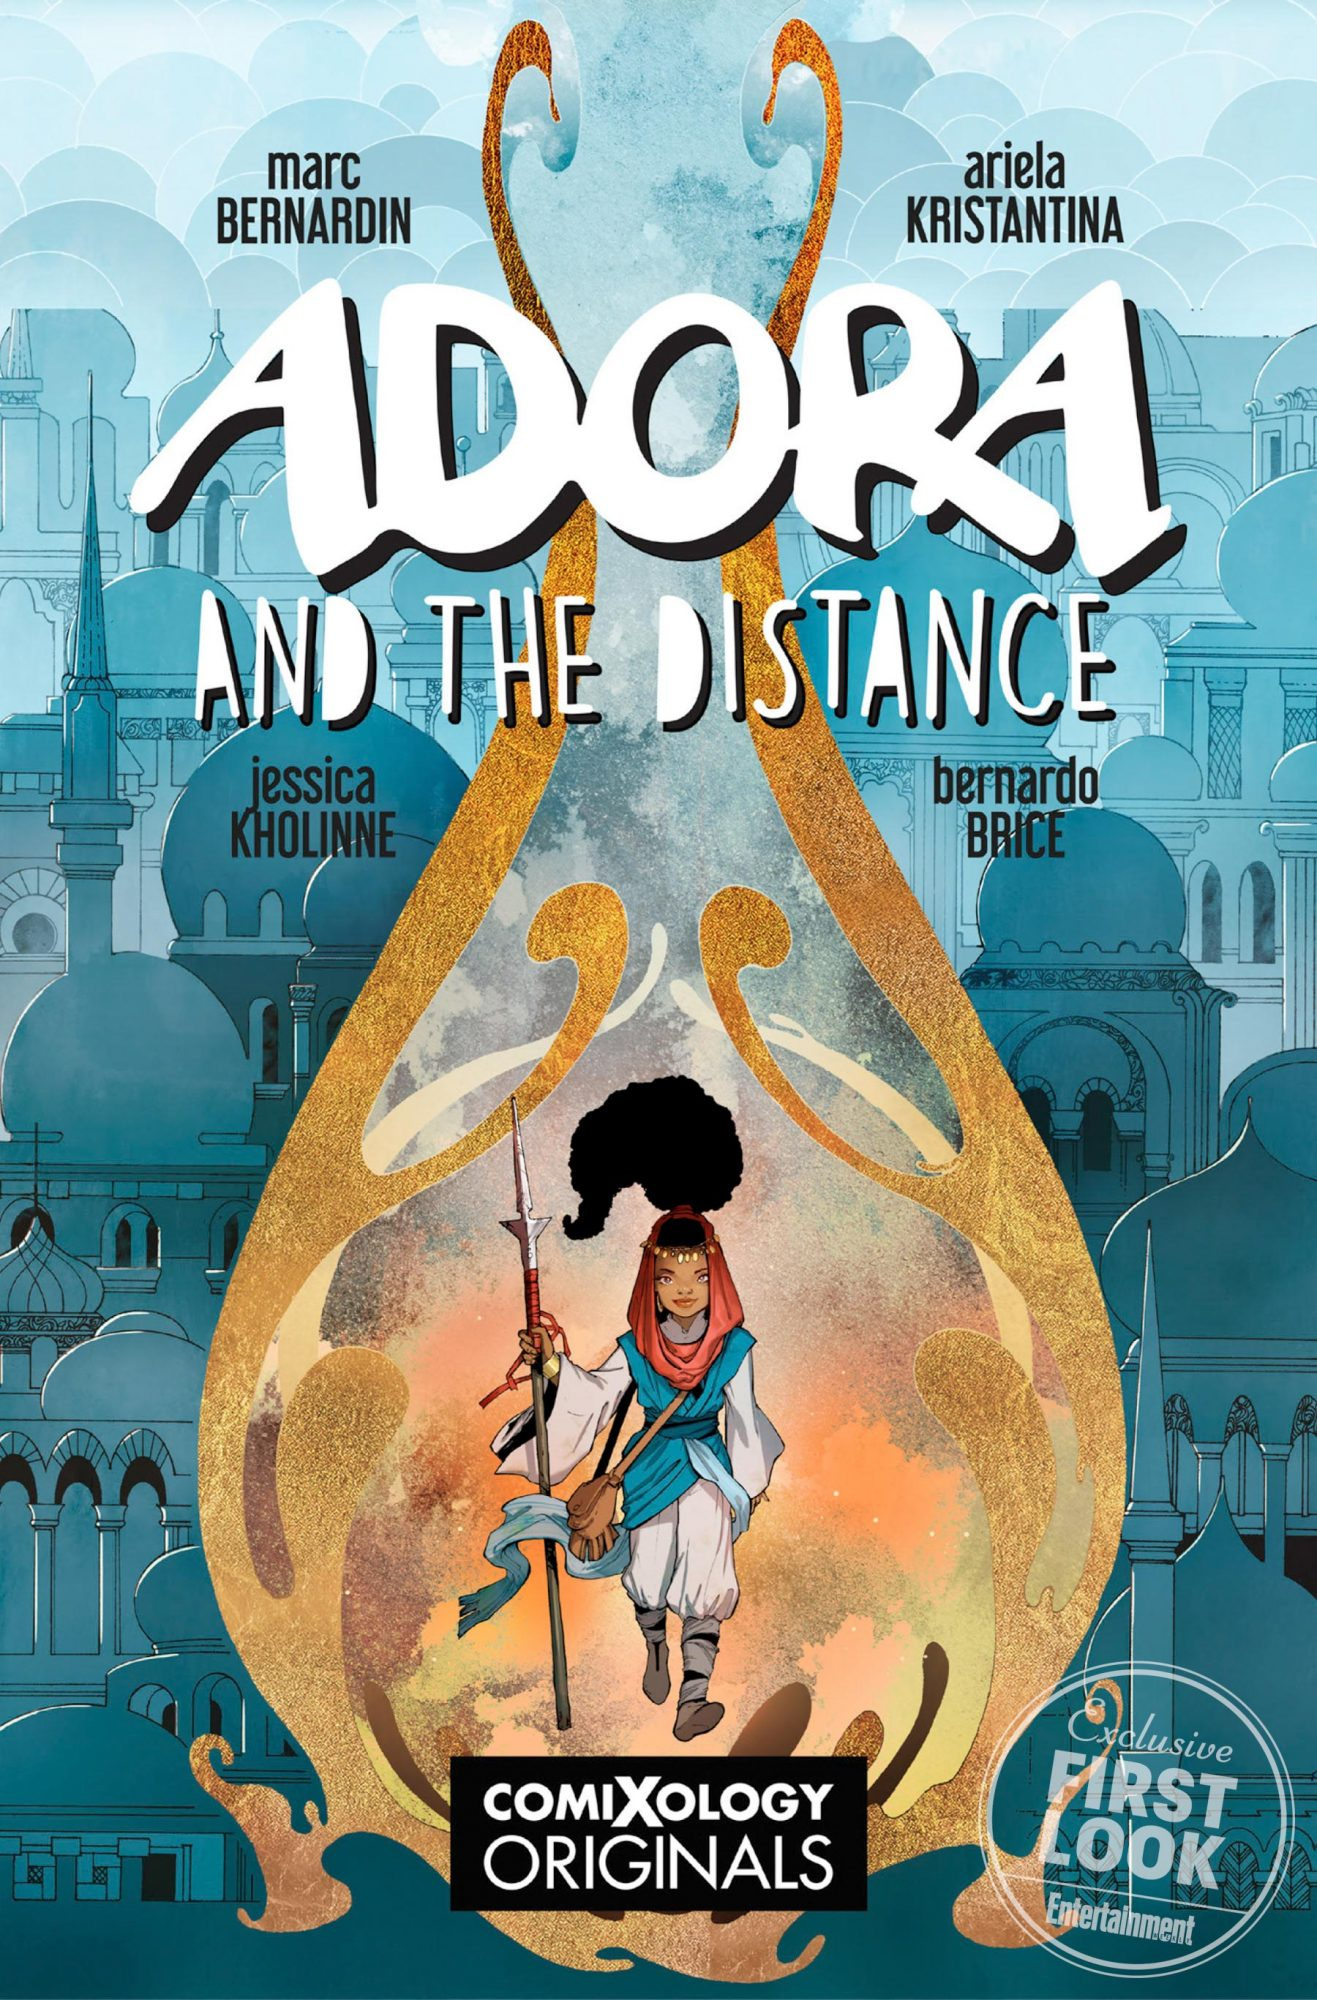 Adora and the Distance by Marc Bernardin CR: Comixology